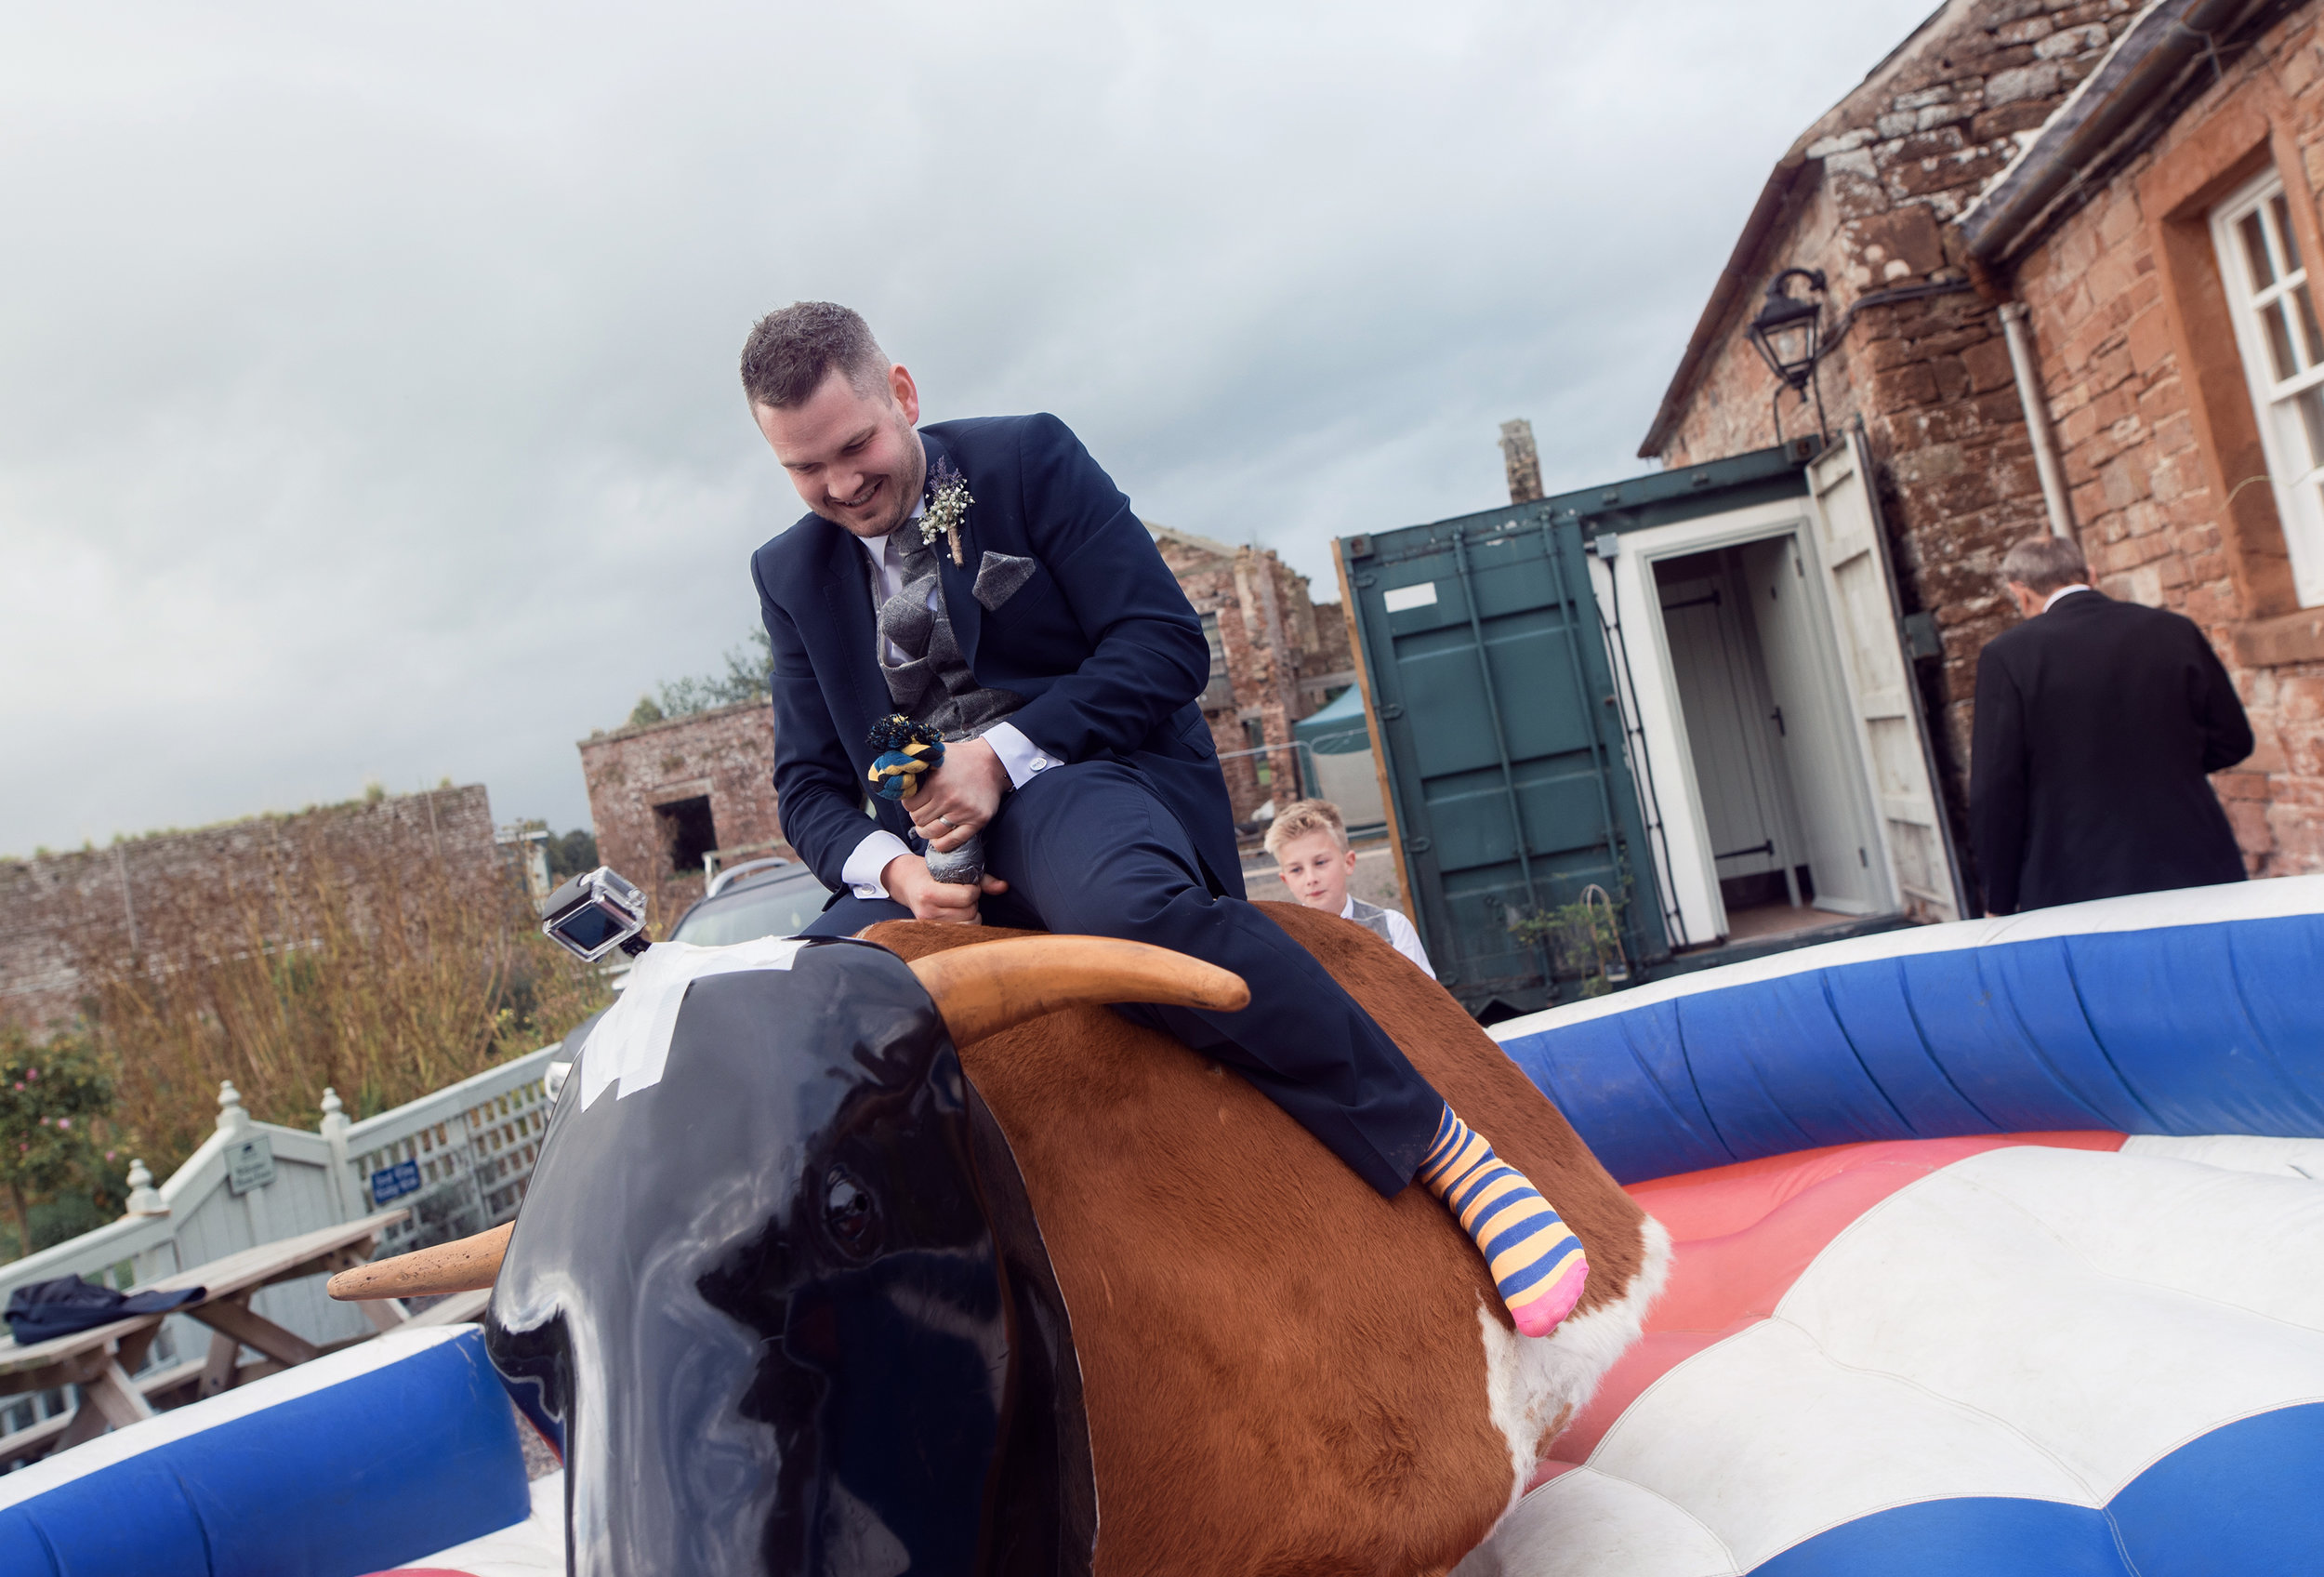 The groom doing his best to stay on the rodeo bull ride he did not last very long at all